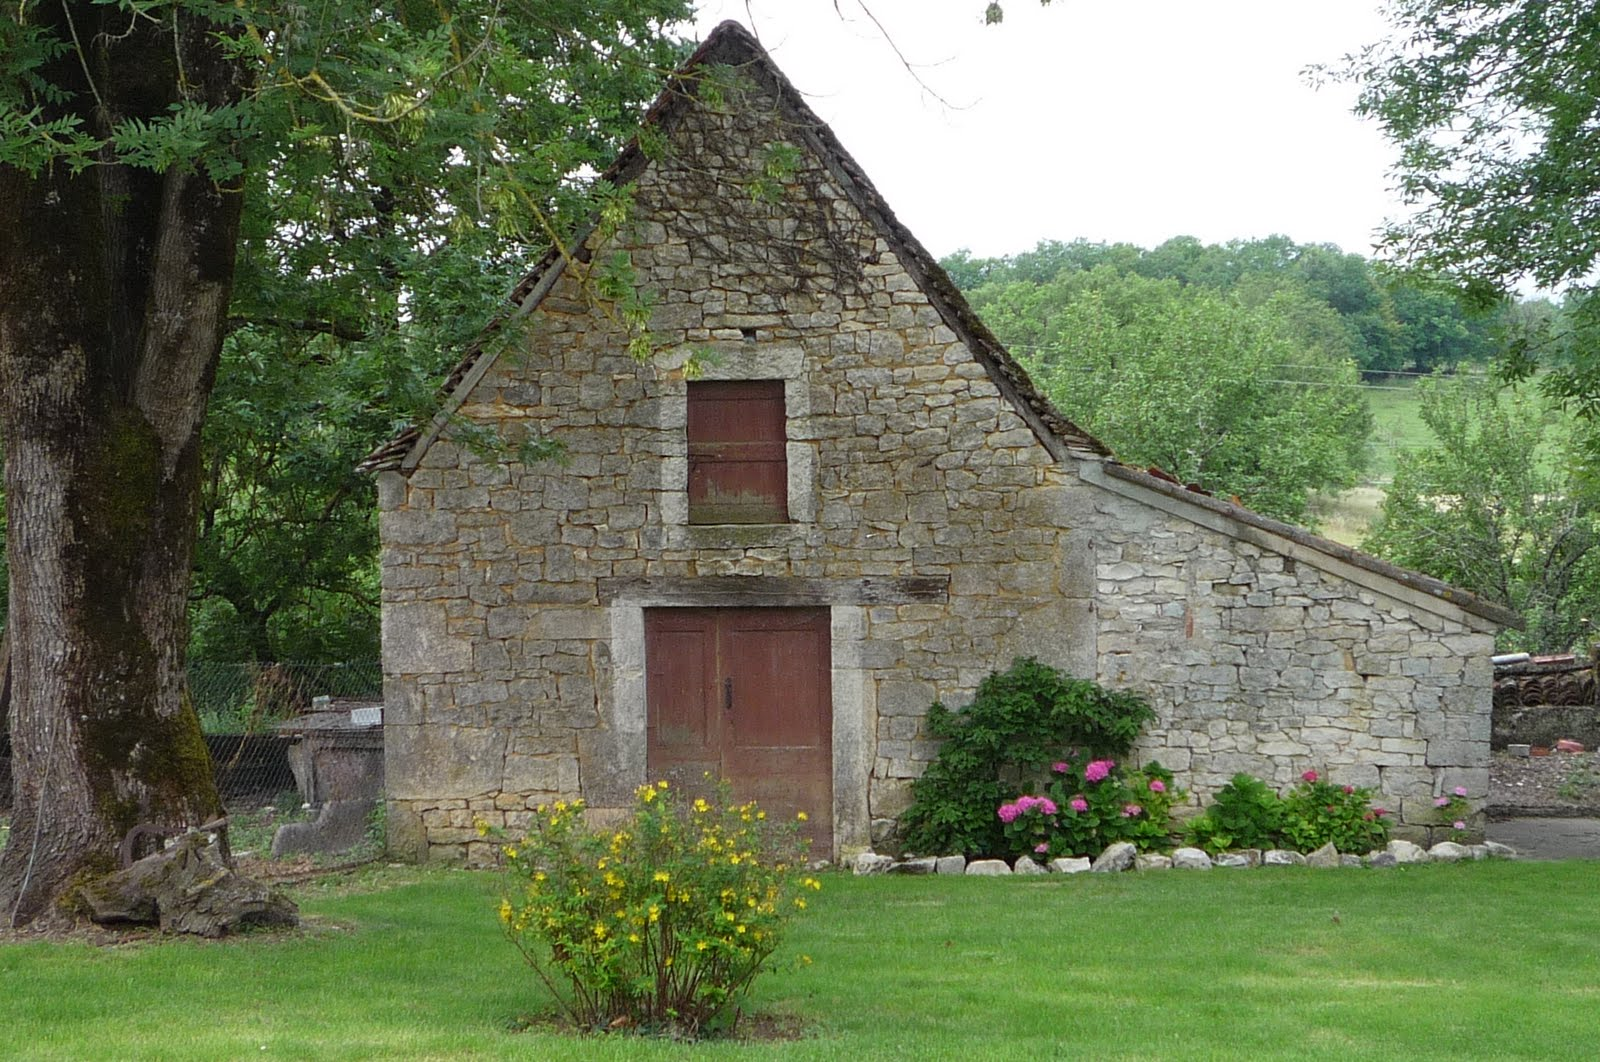 A Real Original Old French Farmhouse And Barn